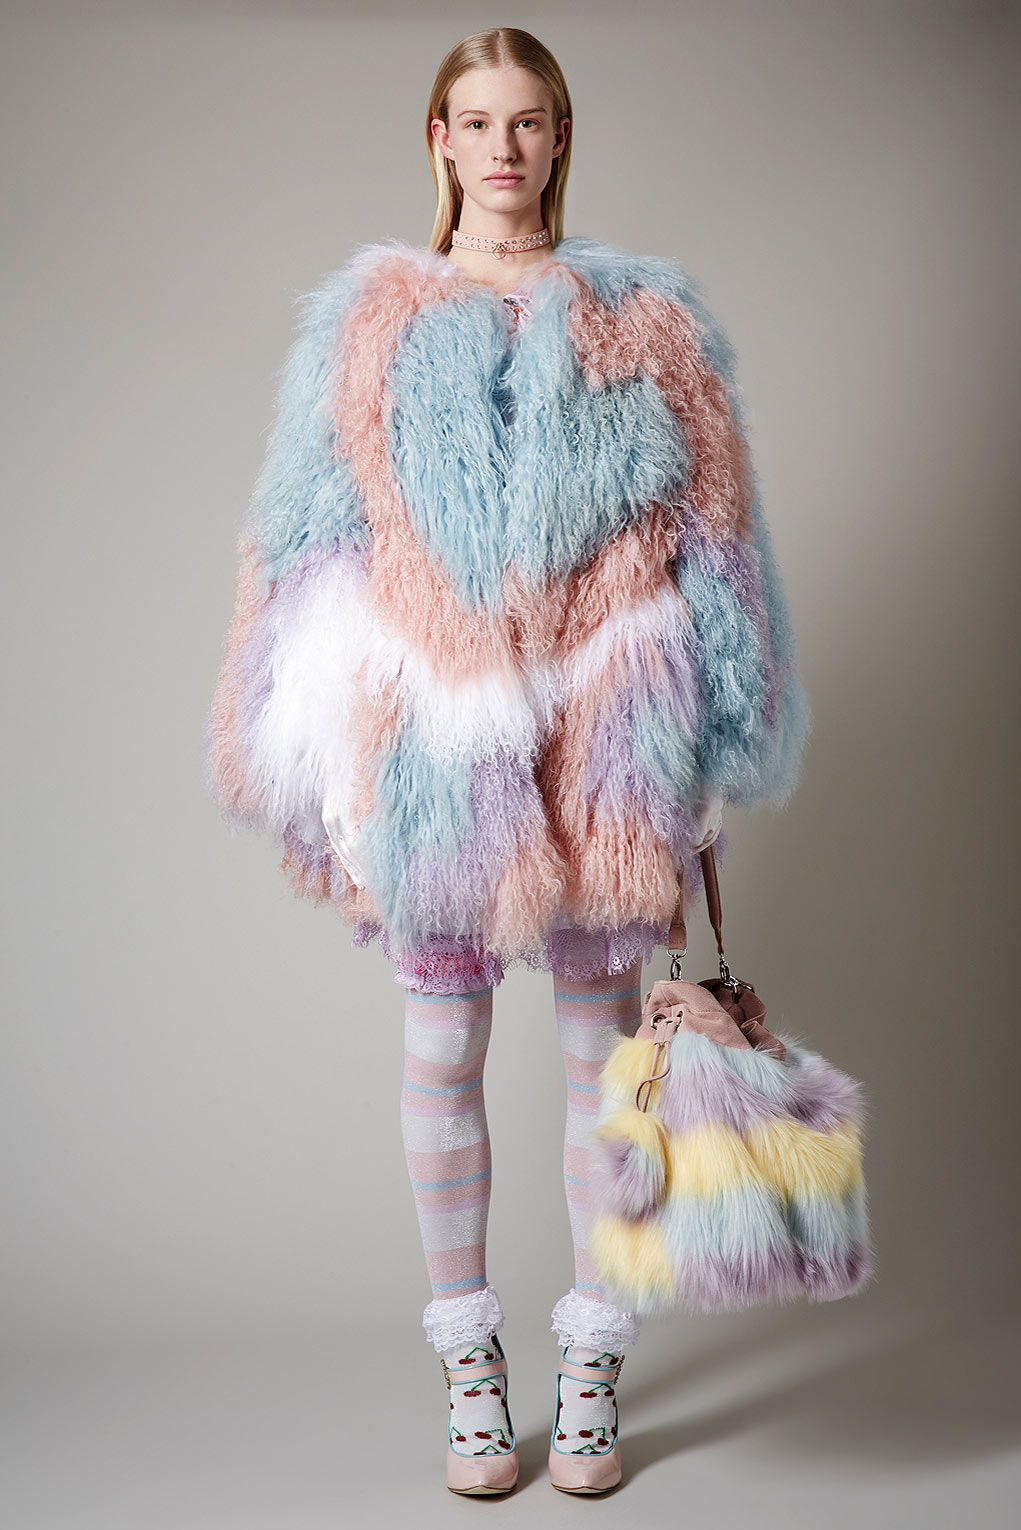 Meadham Kirchhoff for Topshop. fashion, style, pastel colors, candy colors, faux fur coat, outfit inspiration, faux fur bag, fashion accessories